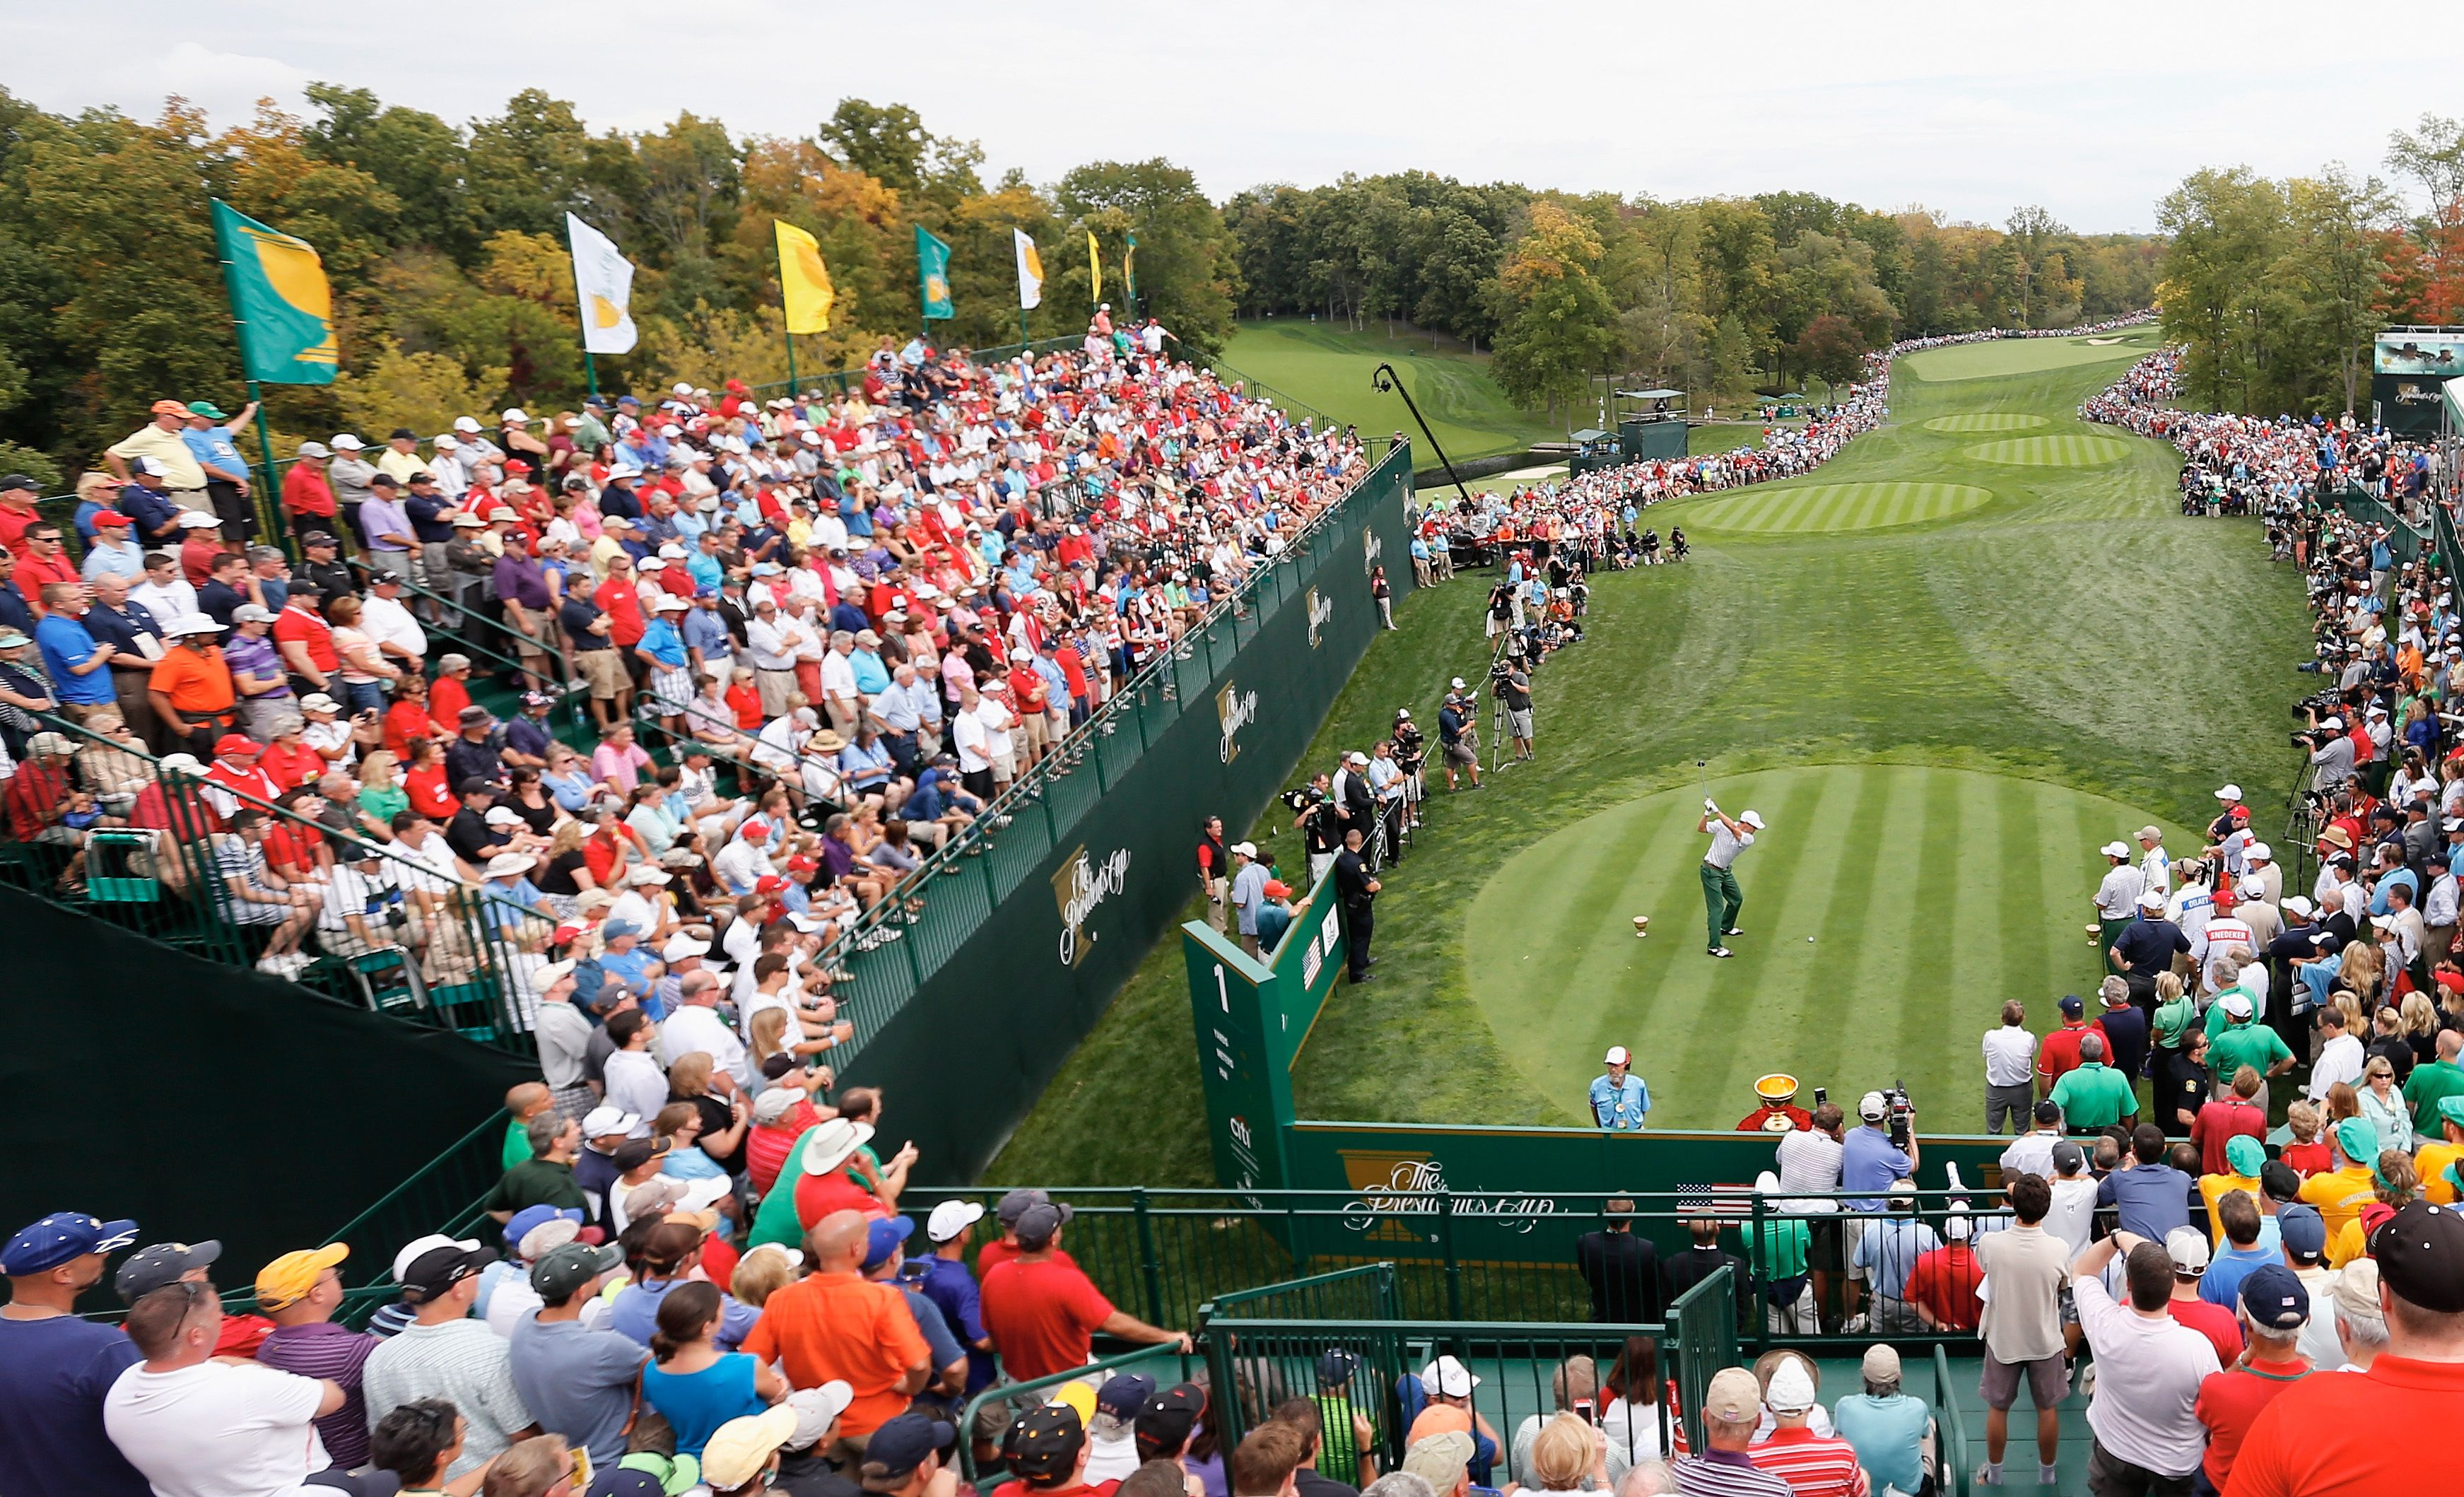 A scene from Muirfield Village during the 2013 Presidents Cup